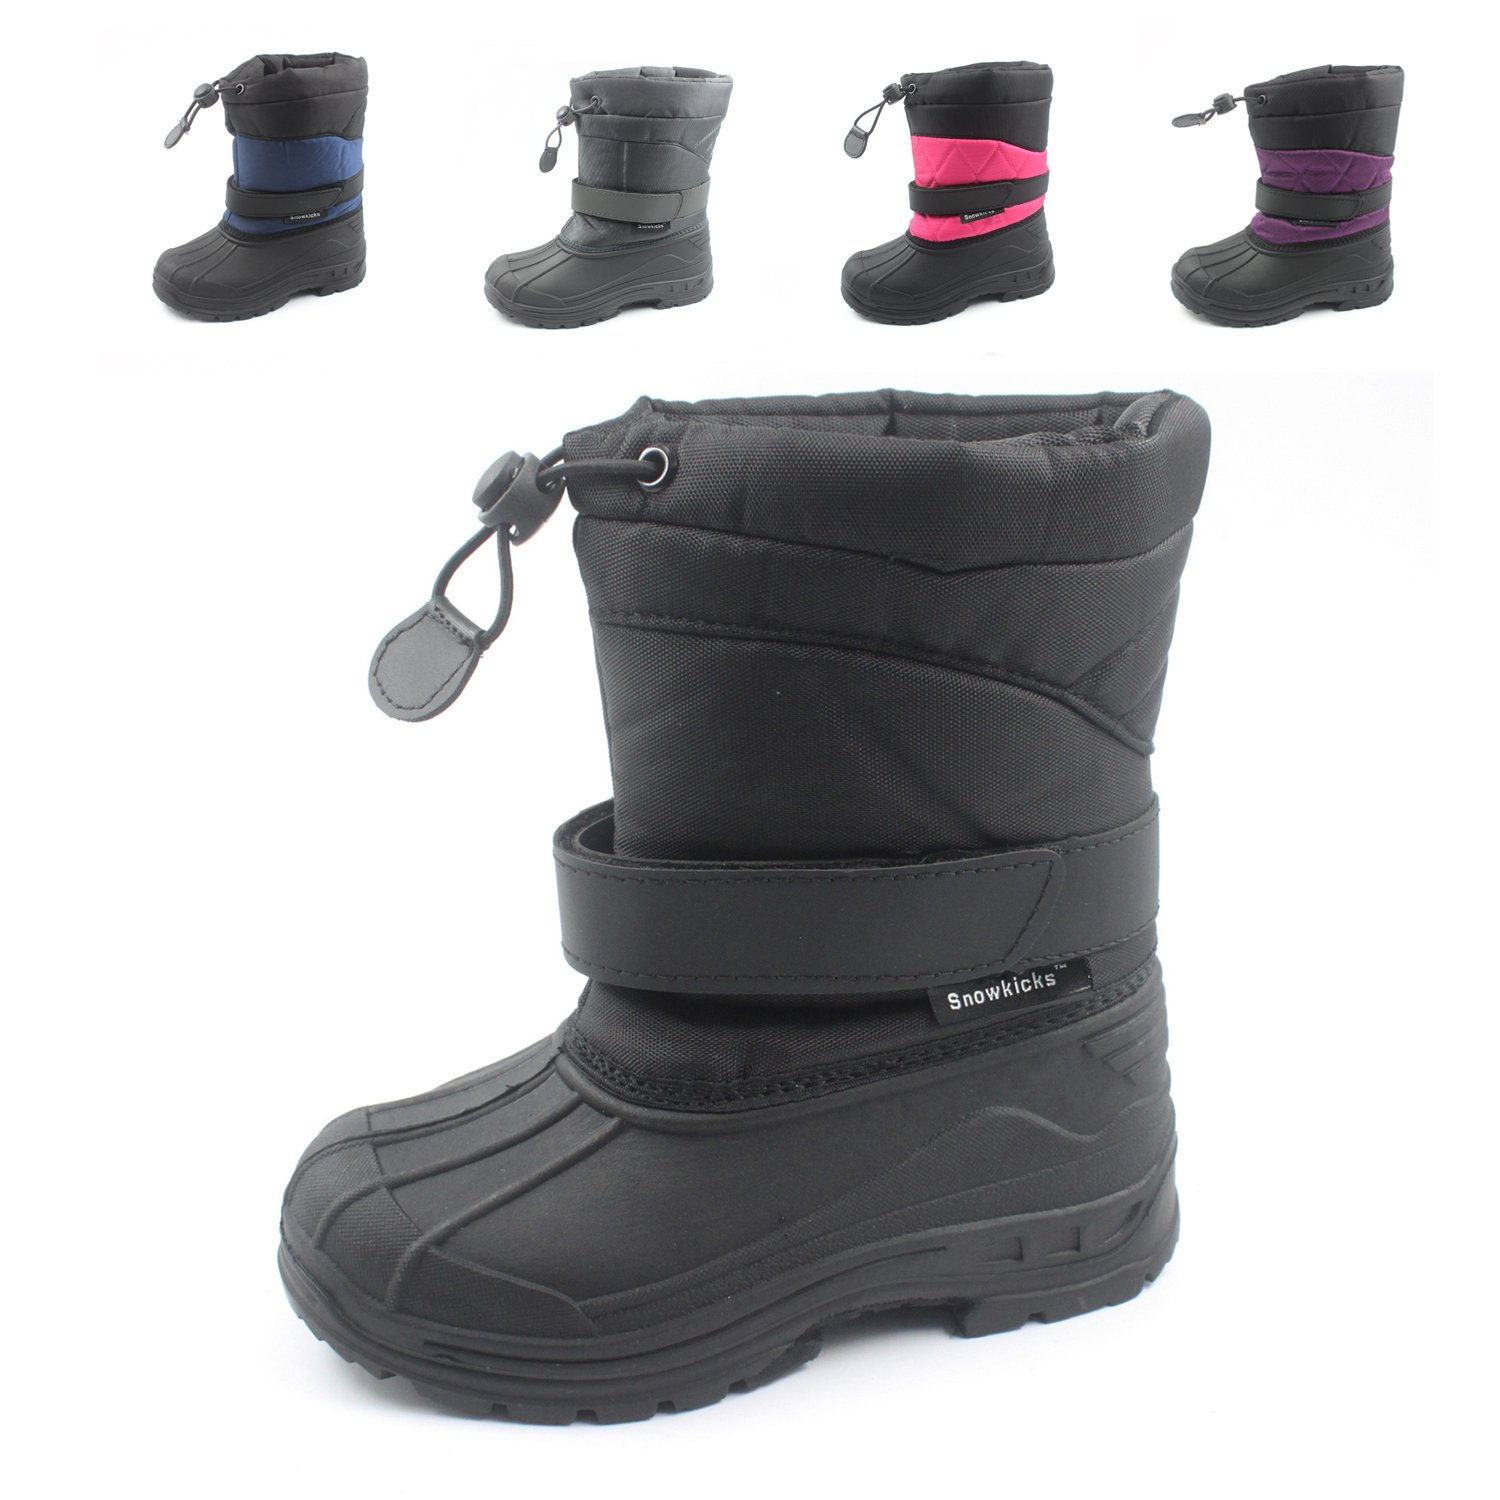 Snowkicks Cold Weather Kids Childrens Snow Boots Unisex (Toddler/Little Kid/Big Kid) Many Colors by SkaDoo